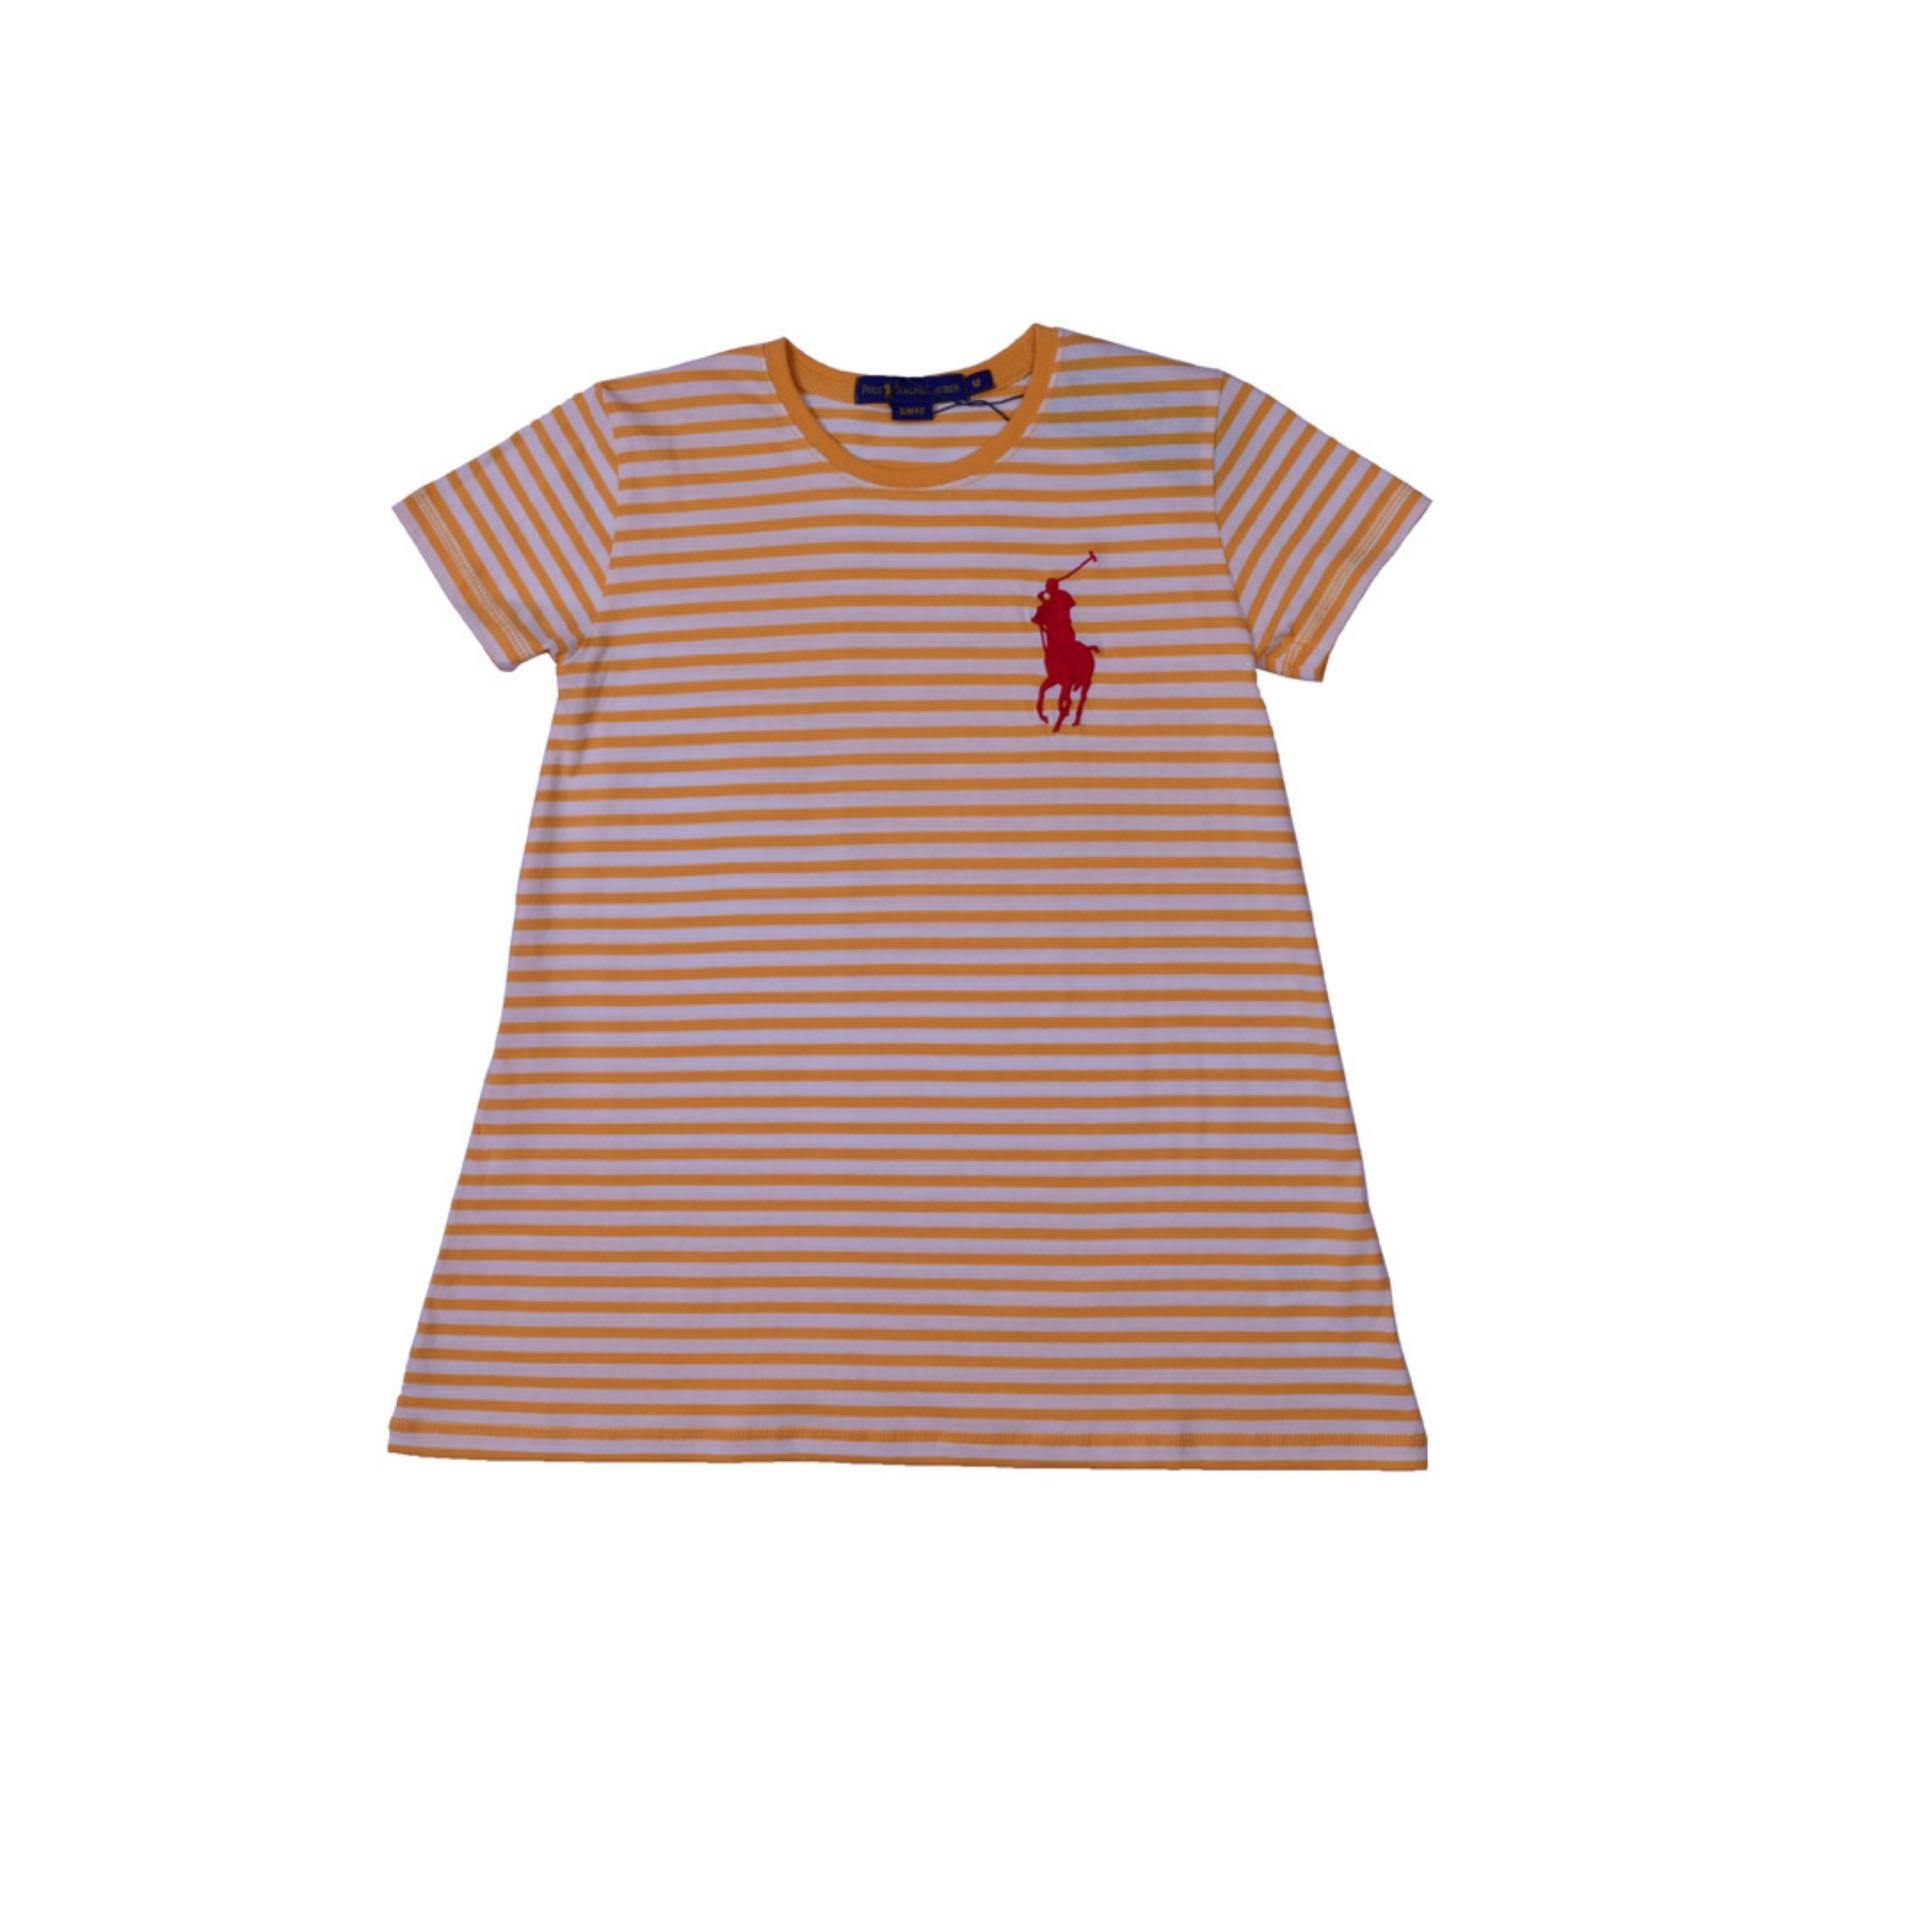 POLO RALPH LAUREN - T SHIRT STRIPE CUSTOM FIT S/S FAIR ORANGE- WHITE KIDS GIRL